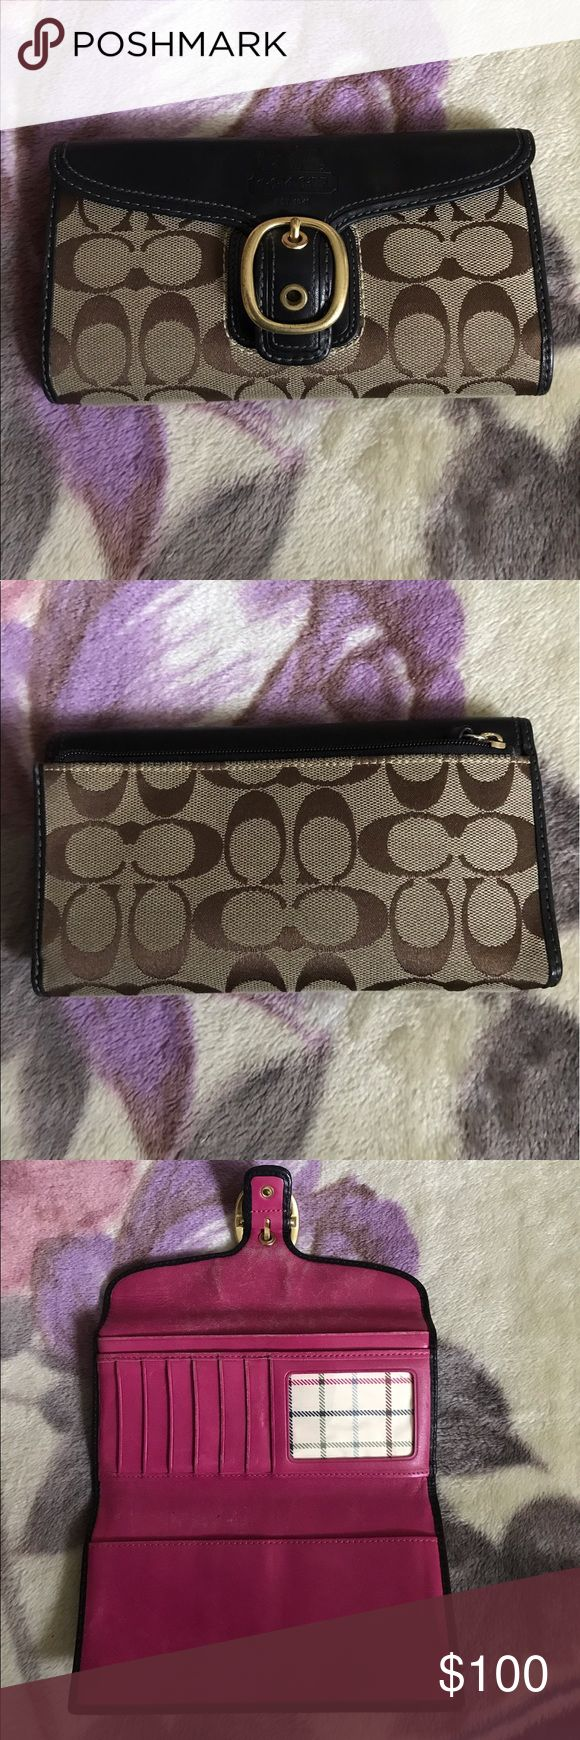 Authentic Coach Wallet Authentic Coach wallet with front buckle snaps , pink leather interior. Holds 7 credit cards/ IDs.,checkbook. Has zipper on side for coins. Bundle this wallet with matching authentic Coach shoulder bag. Coach Bags Wallets